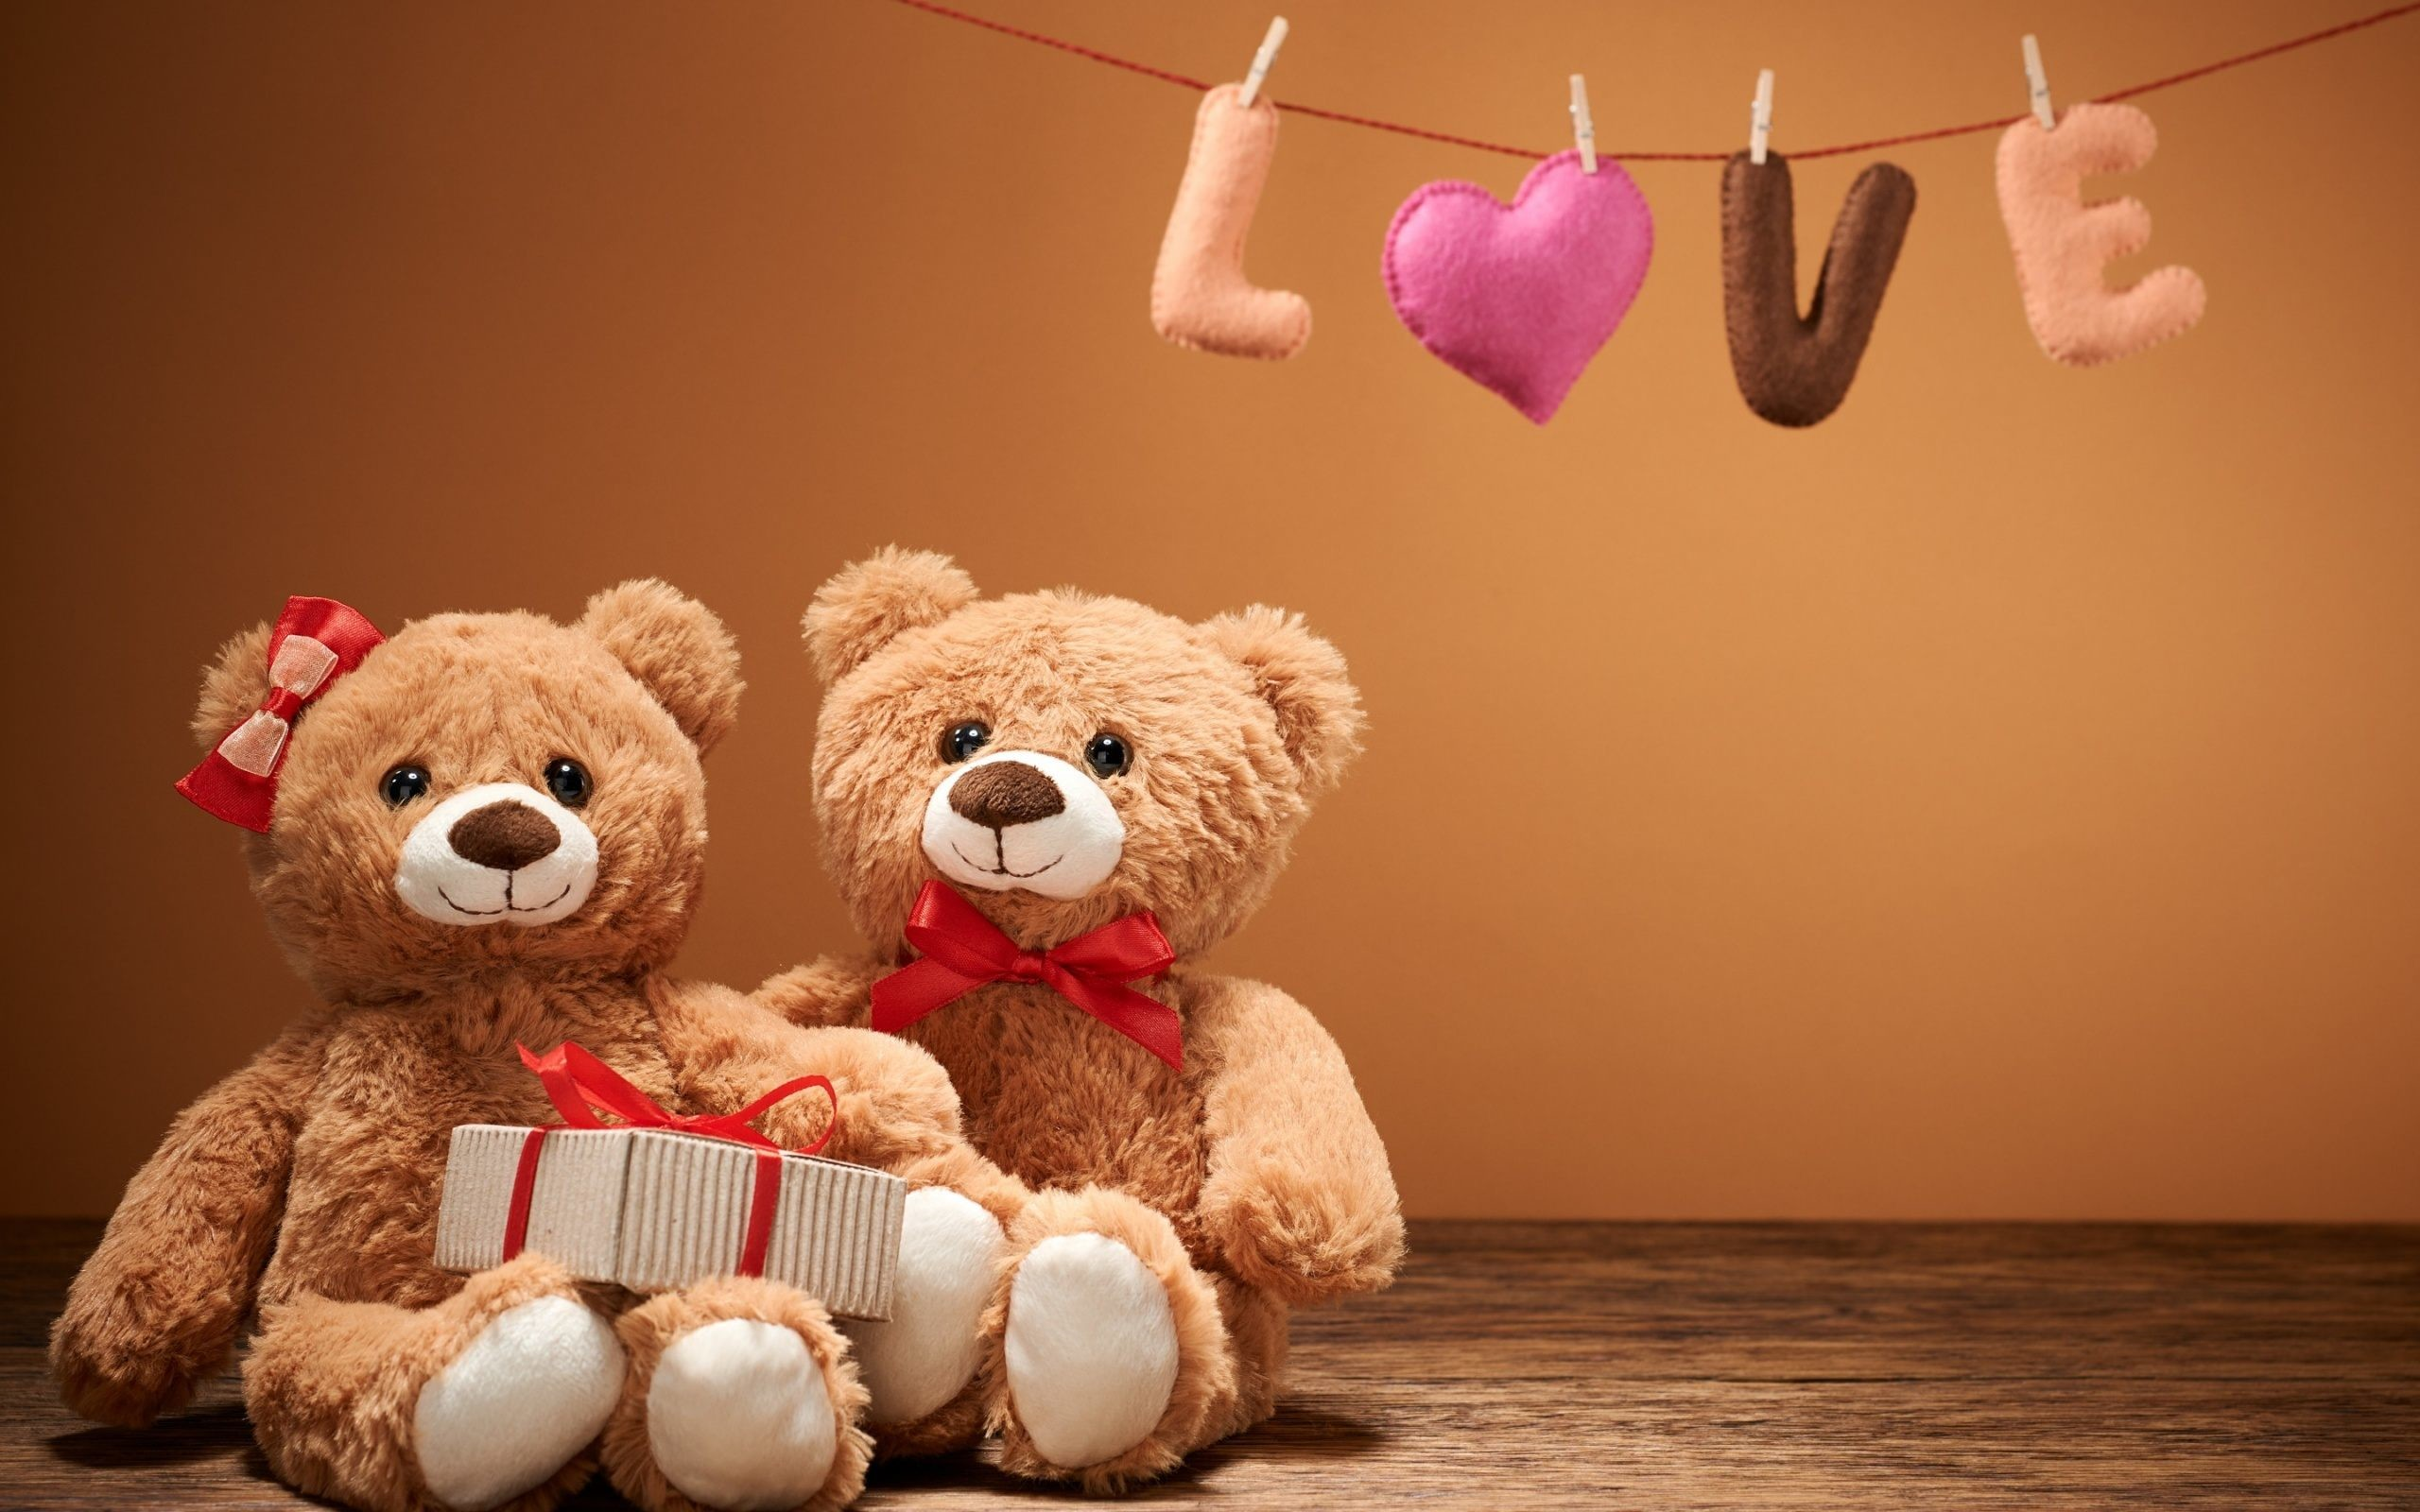 Teddy Bear Love Wallpaper (45+ Pictures